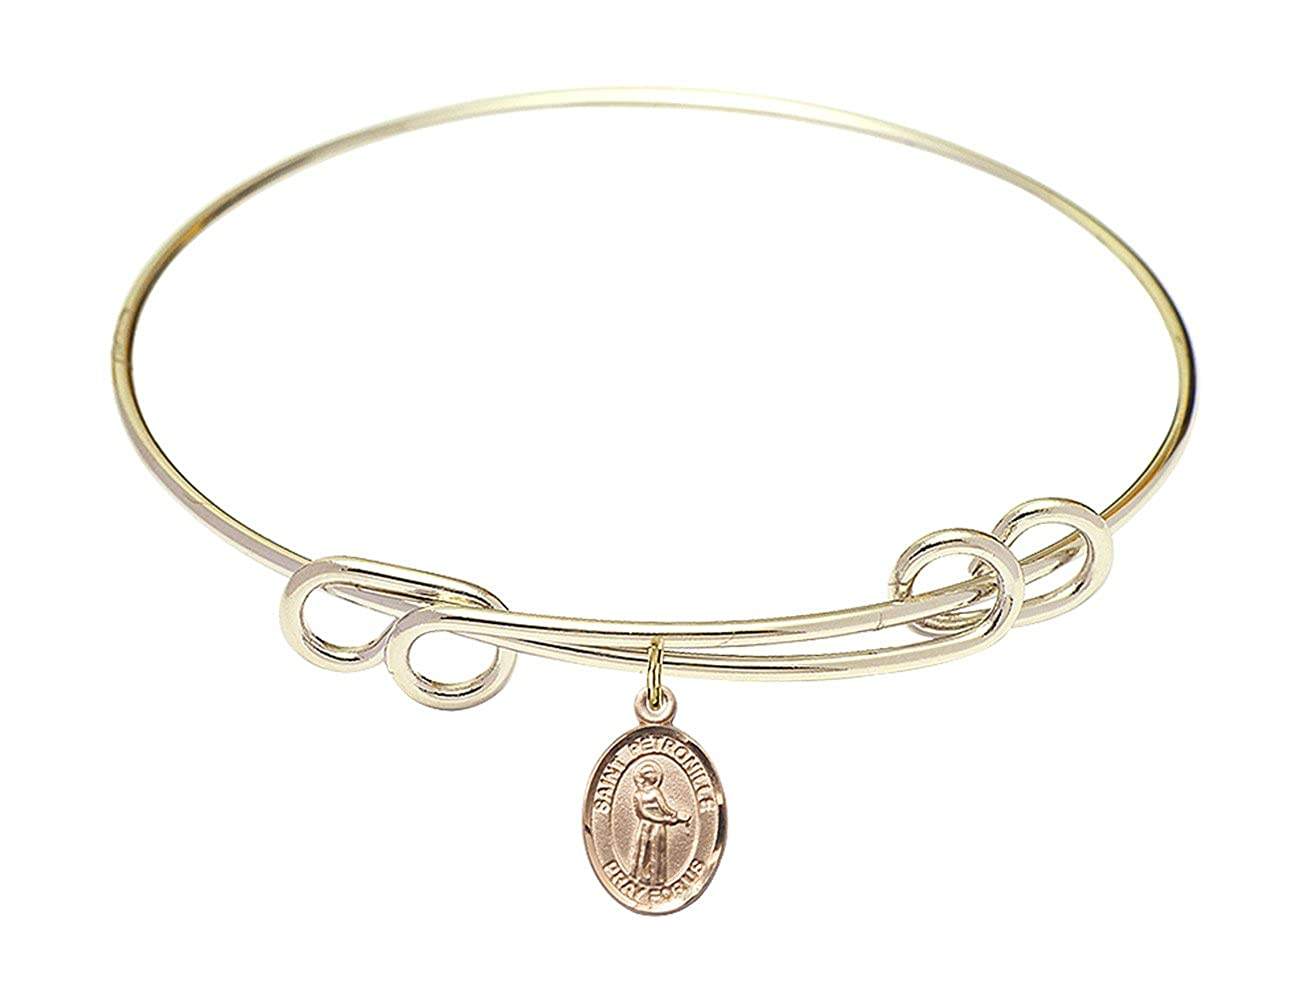 Round Double Loop Bangle Bracelet w//St Petronille in Gold-Filled